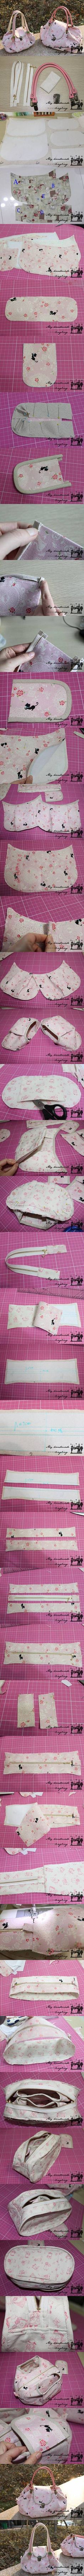 DIY Elegant Fabric Handbag